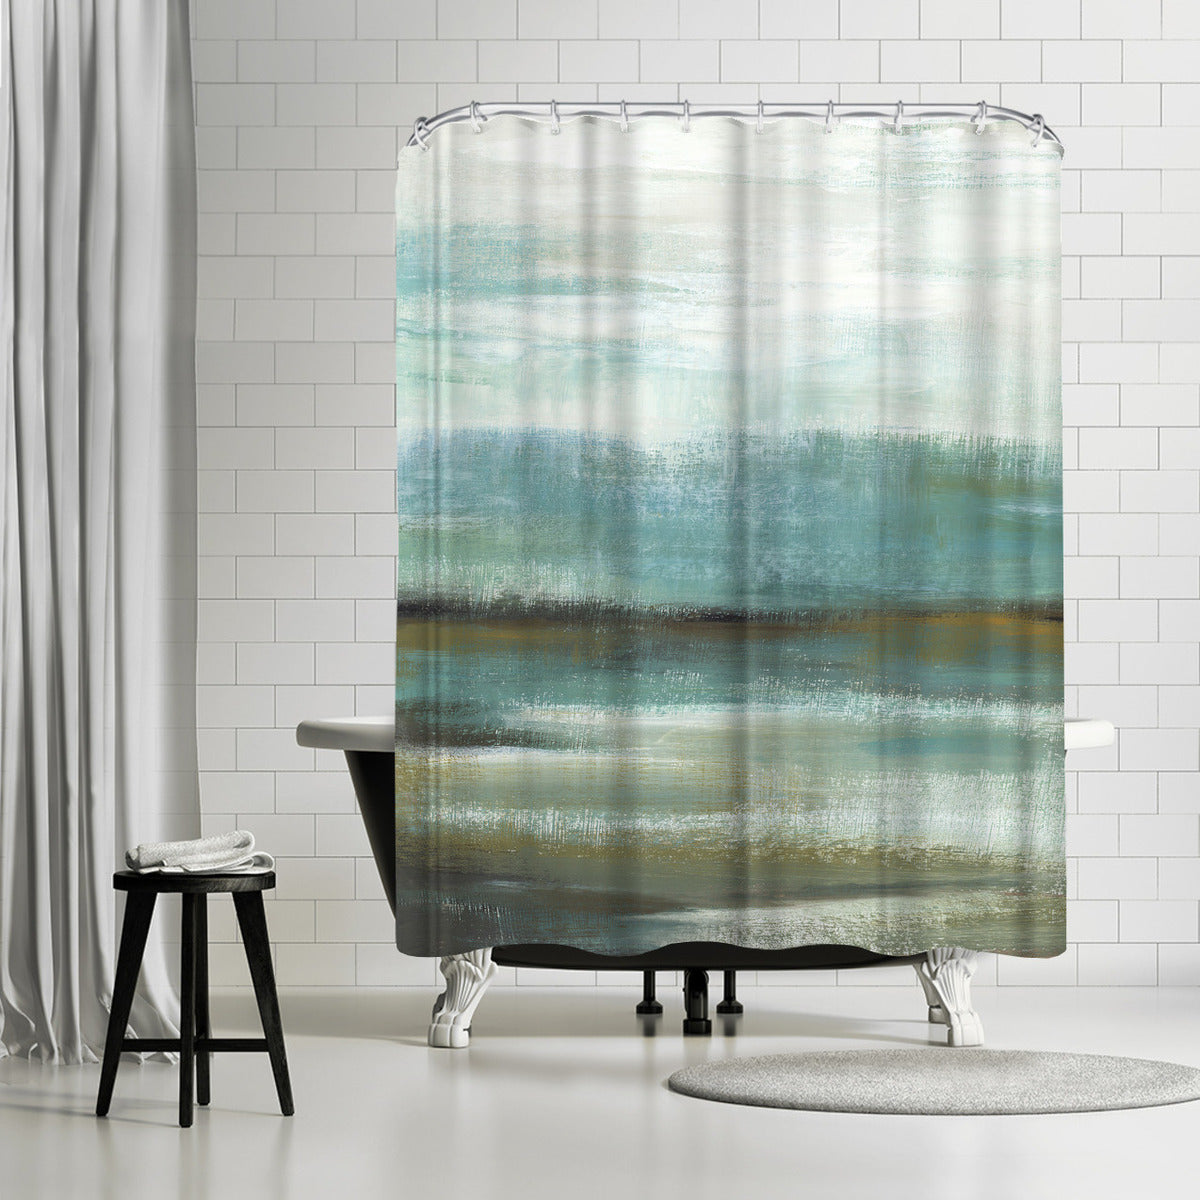 Sprawl I by PI Creative Art Shower Curtain - Shower Curtain - Americanflat